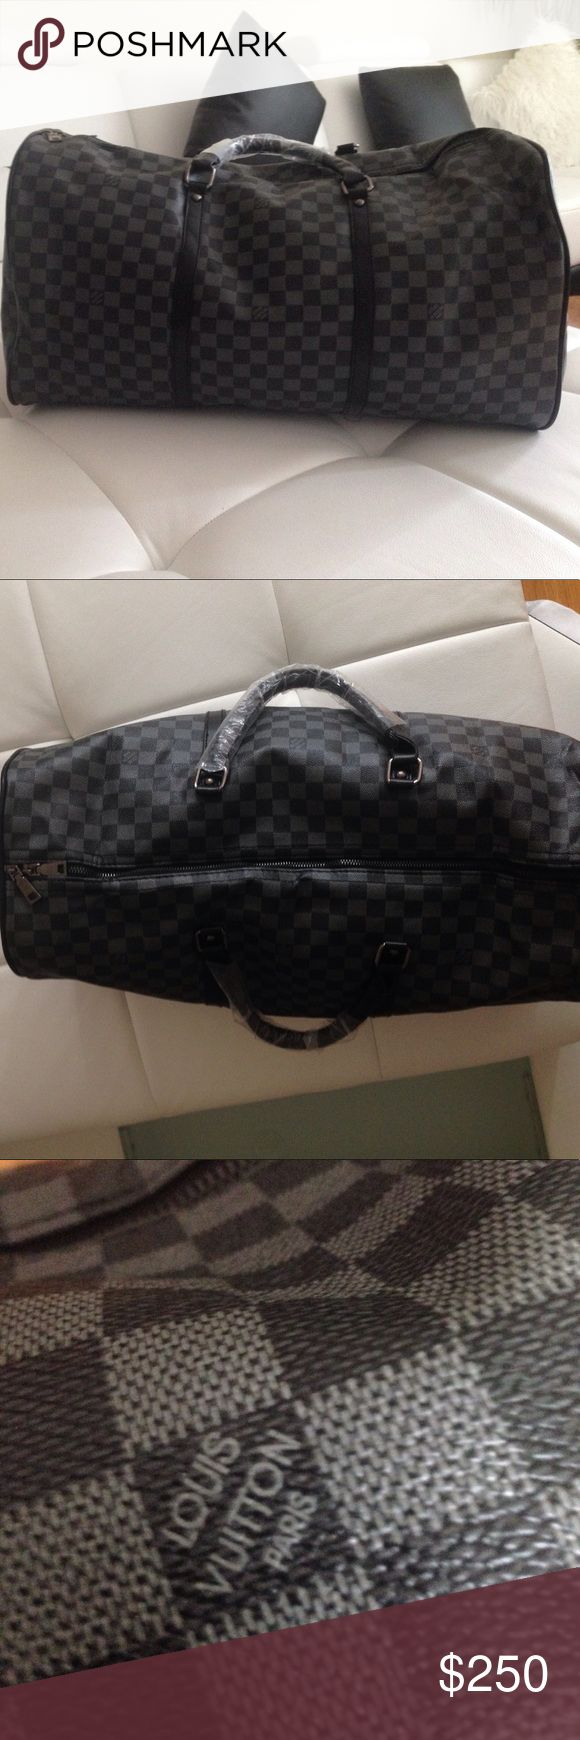 Louis Vuitton duffel bag brand new This Louis Vuitton duffel bag is brand new, the strap for it is not the best but it does the job, I will ship out the same day and make sure that the packaging is 100% neat and correct,this duffle bag is a REP, thank you Louis Vuitton Bags Duffel Bags